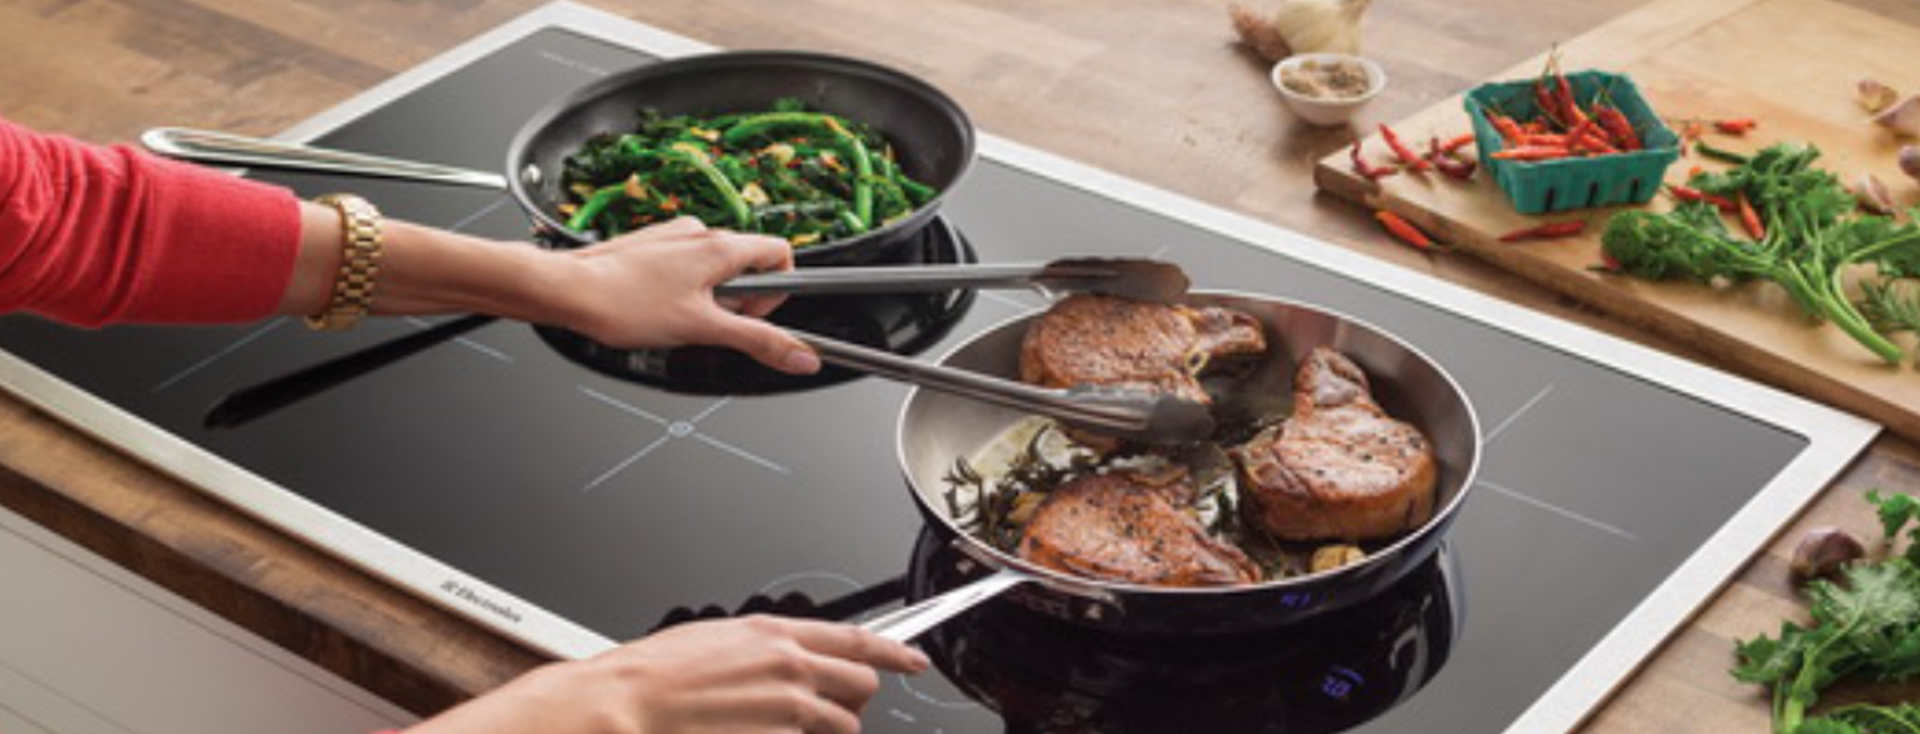 Know The Right Time To Replace Your Induction Cooktop